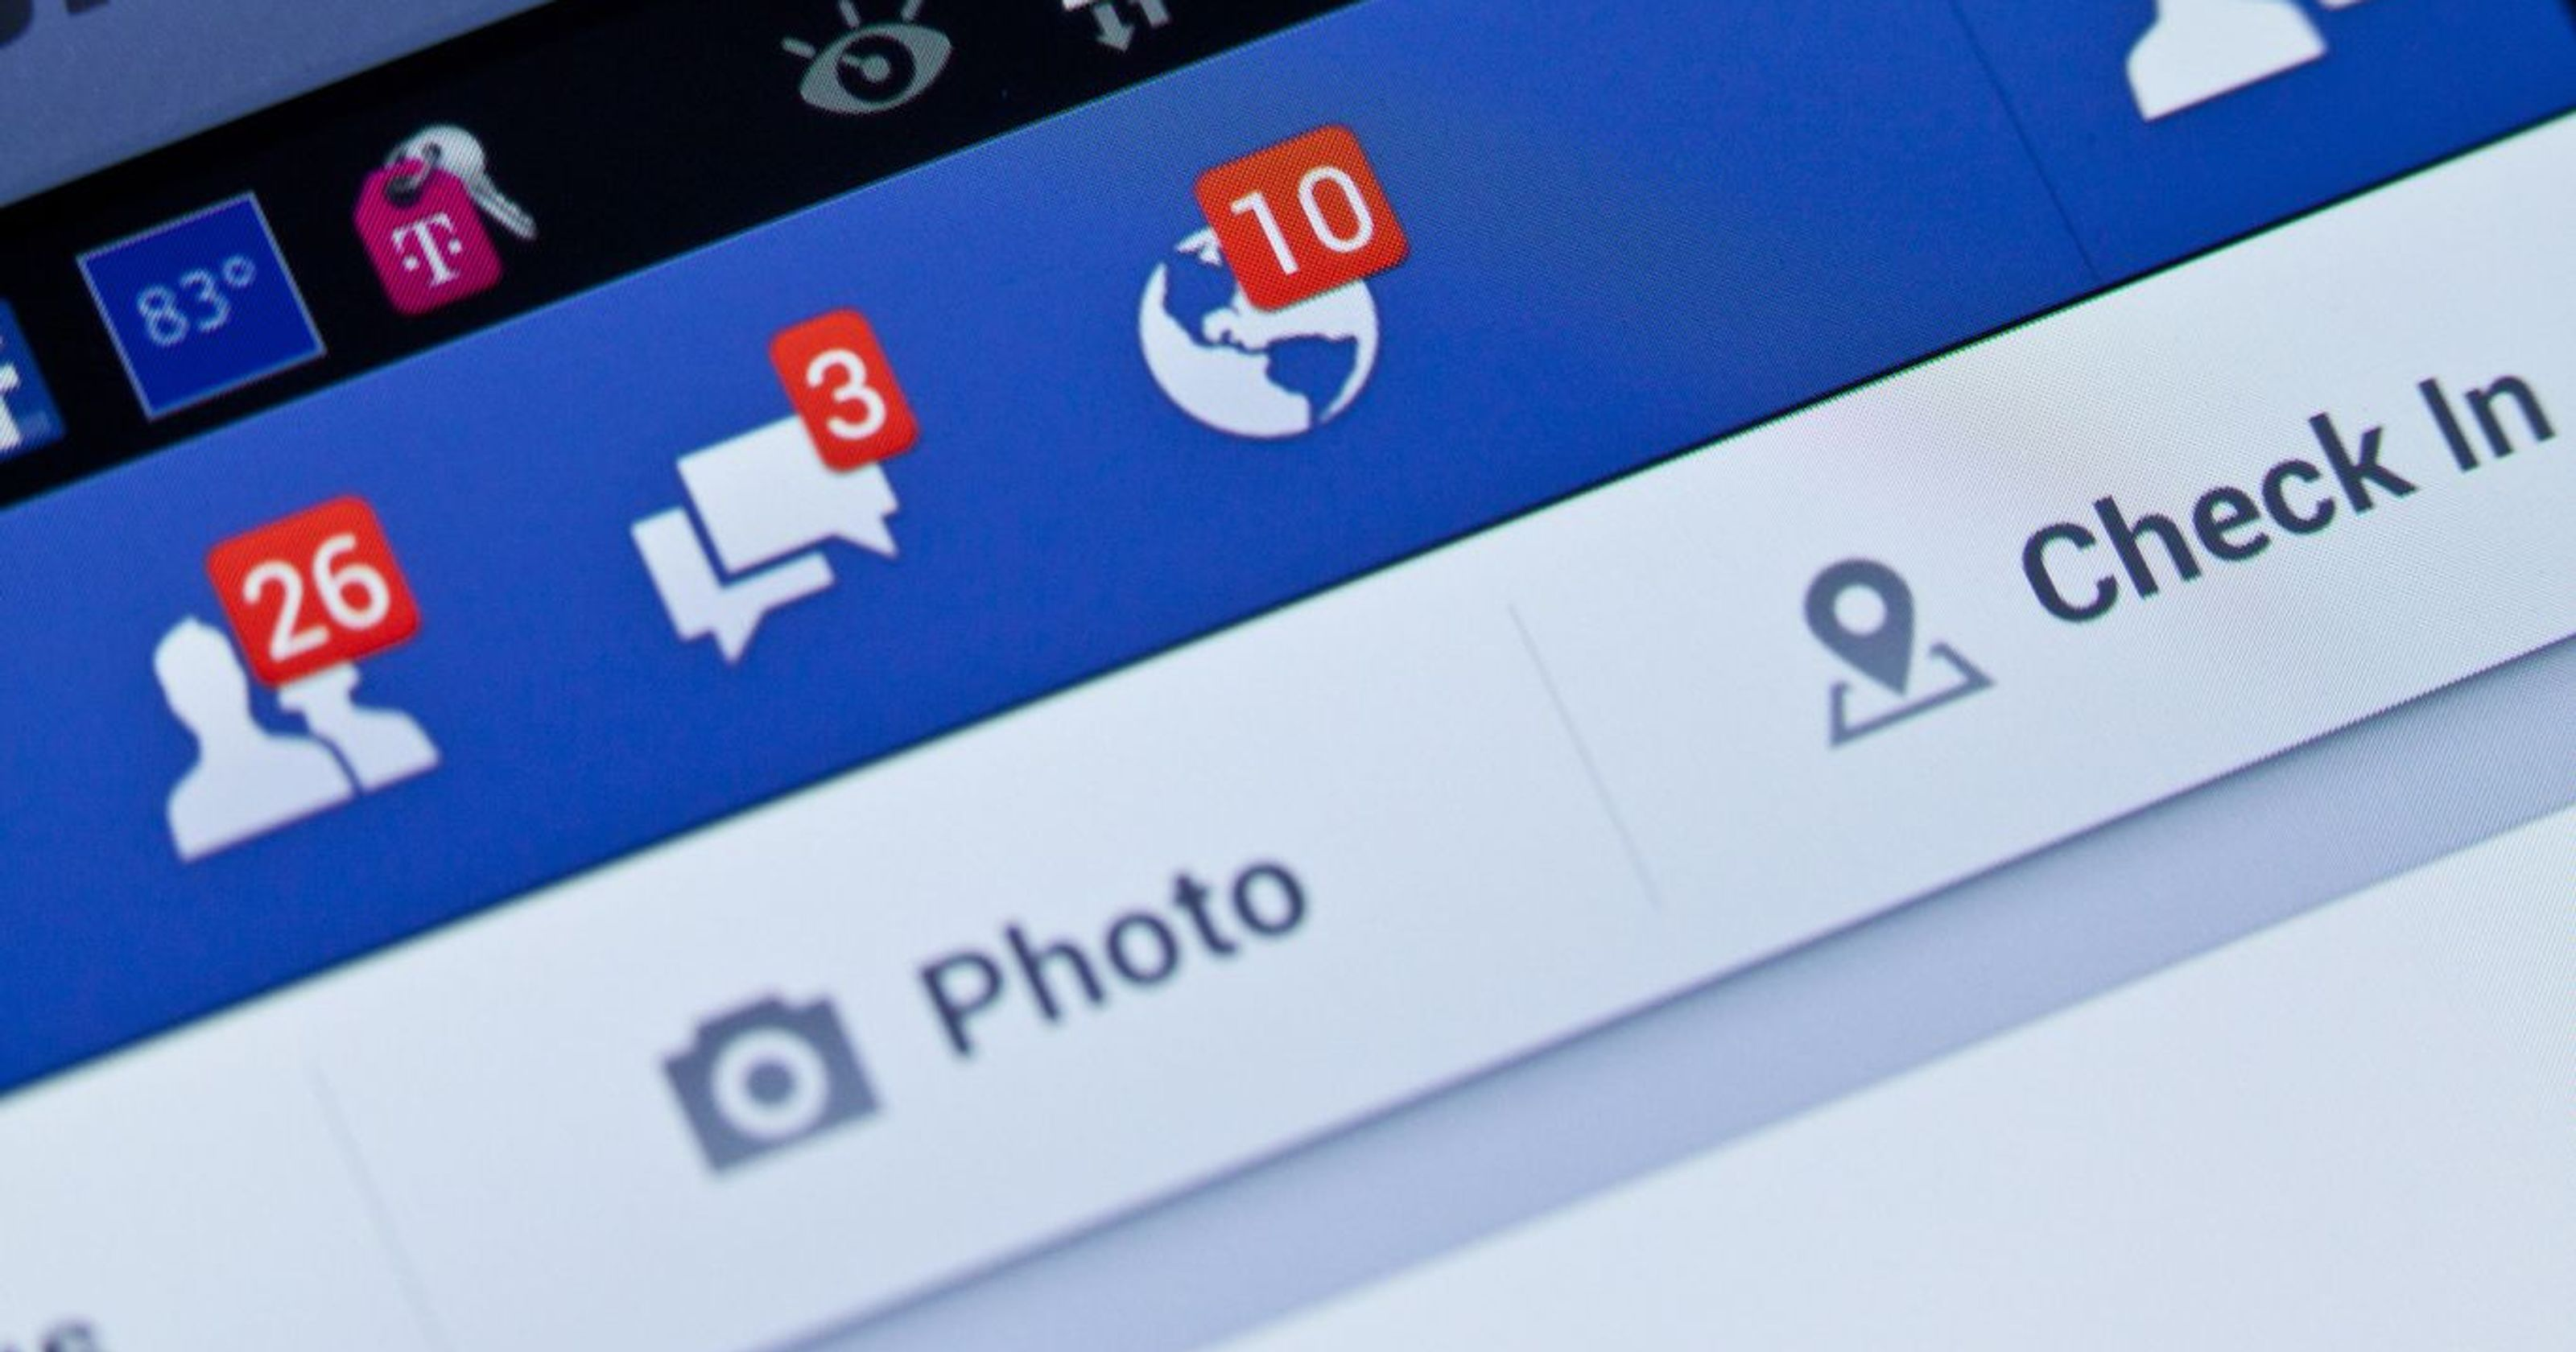 Facebook can buy your privacy for just 20$